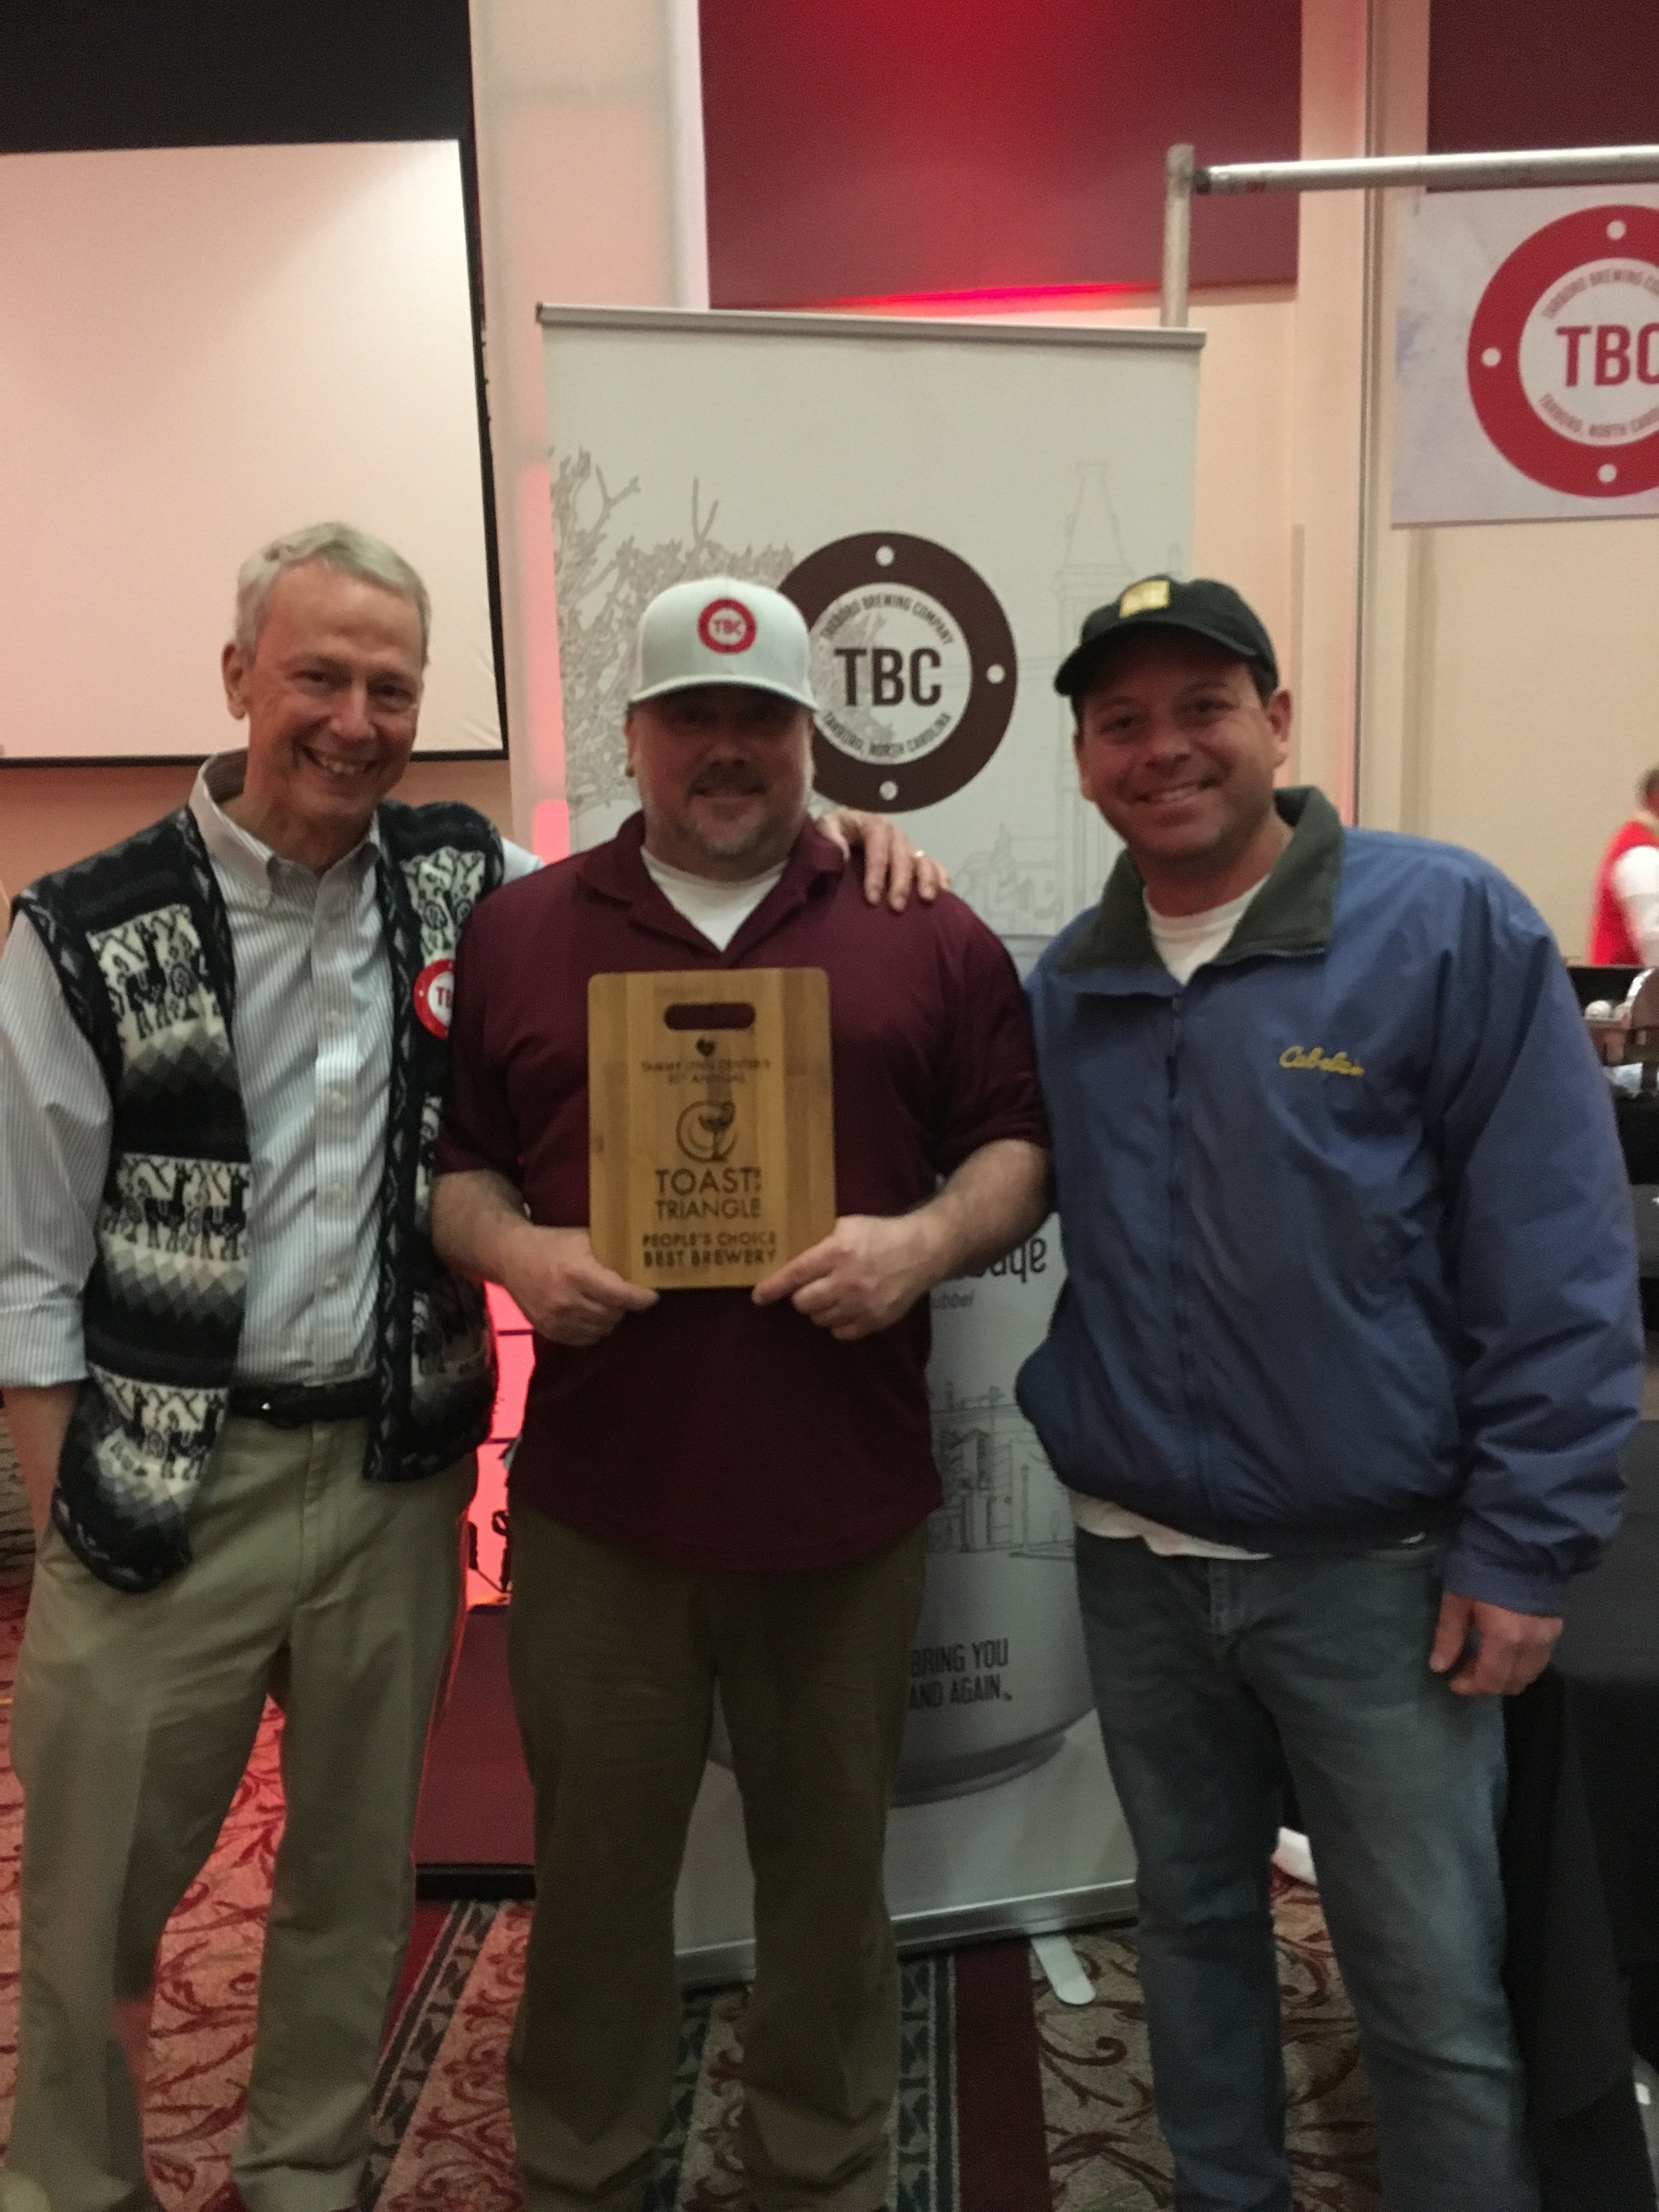 Jim Winslow, Price Miller & Stephen at Toast to the Triangle where TBC won Best Beverage for the second year in a row.